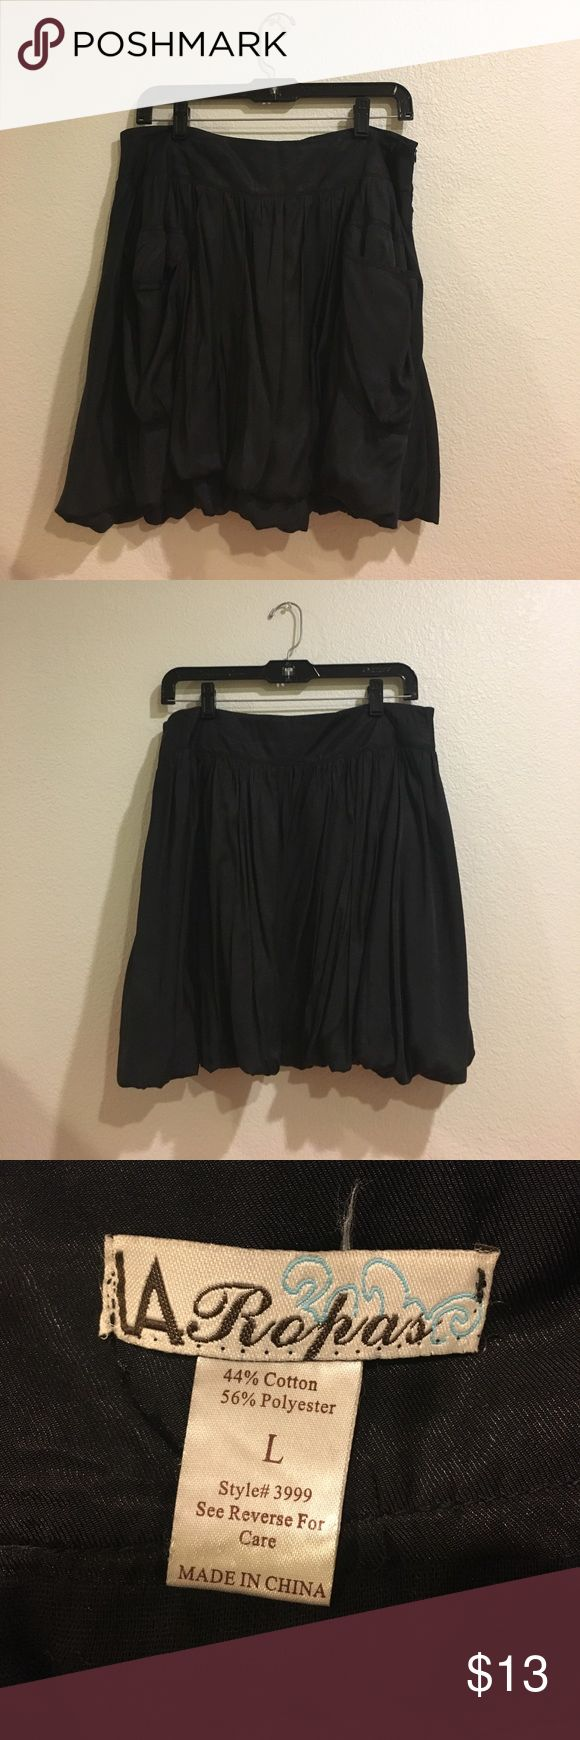 Vintage Black Circle Skirt Black Circle Skirt with 2 Pockets and a Zipper on the Side LA Ropas Skirts Circle & Skater